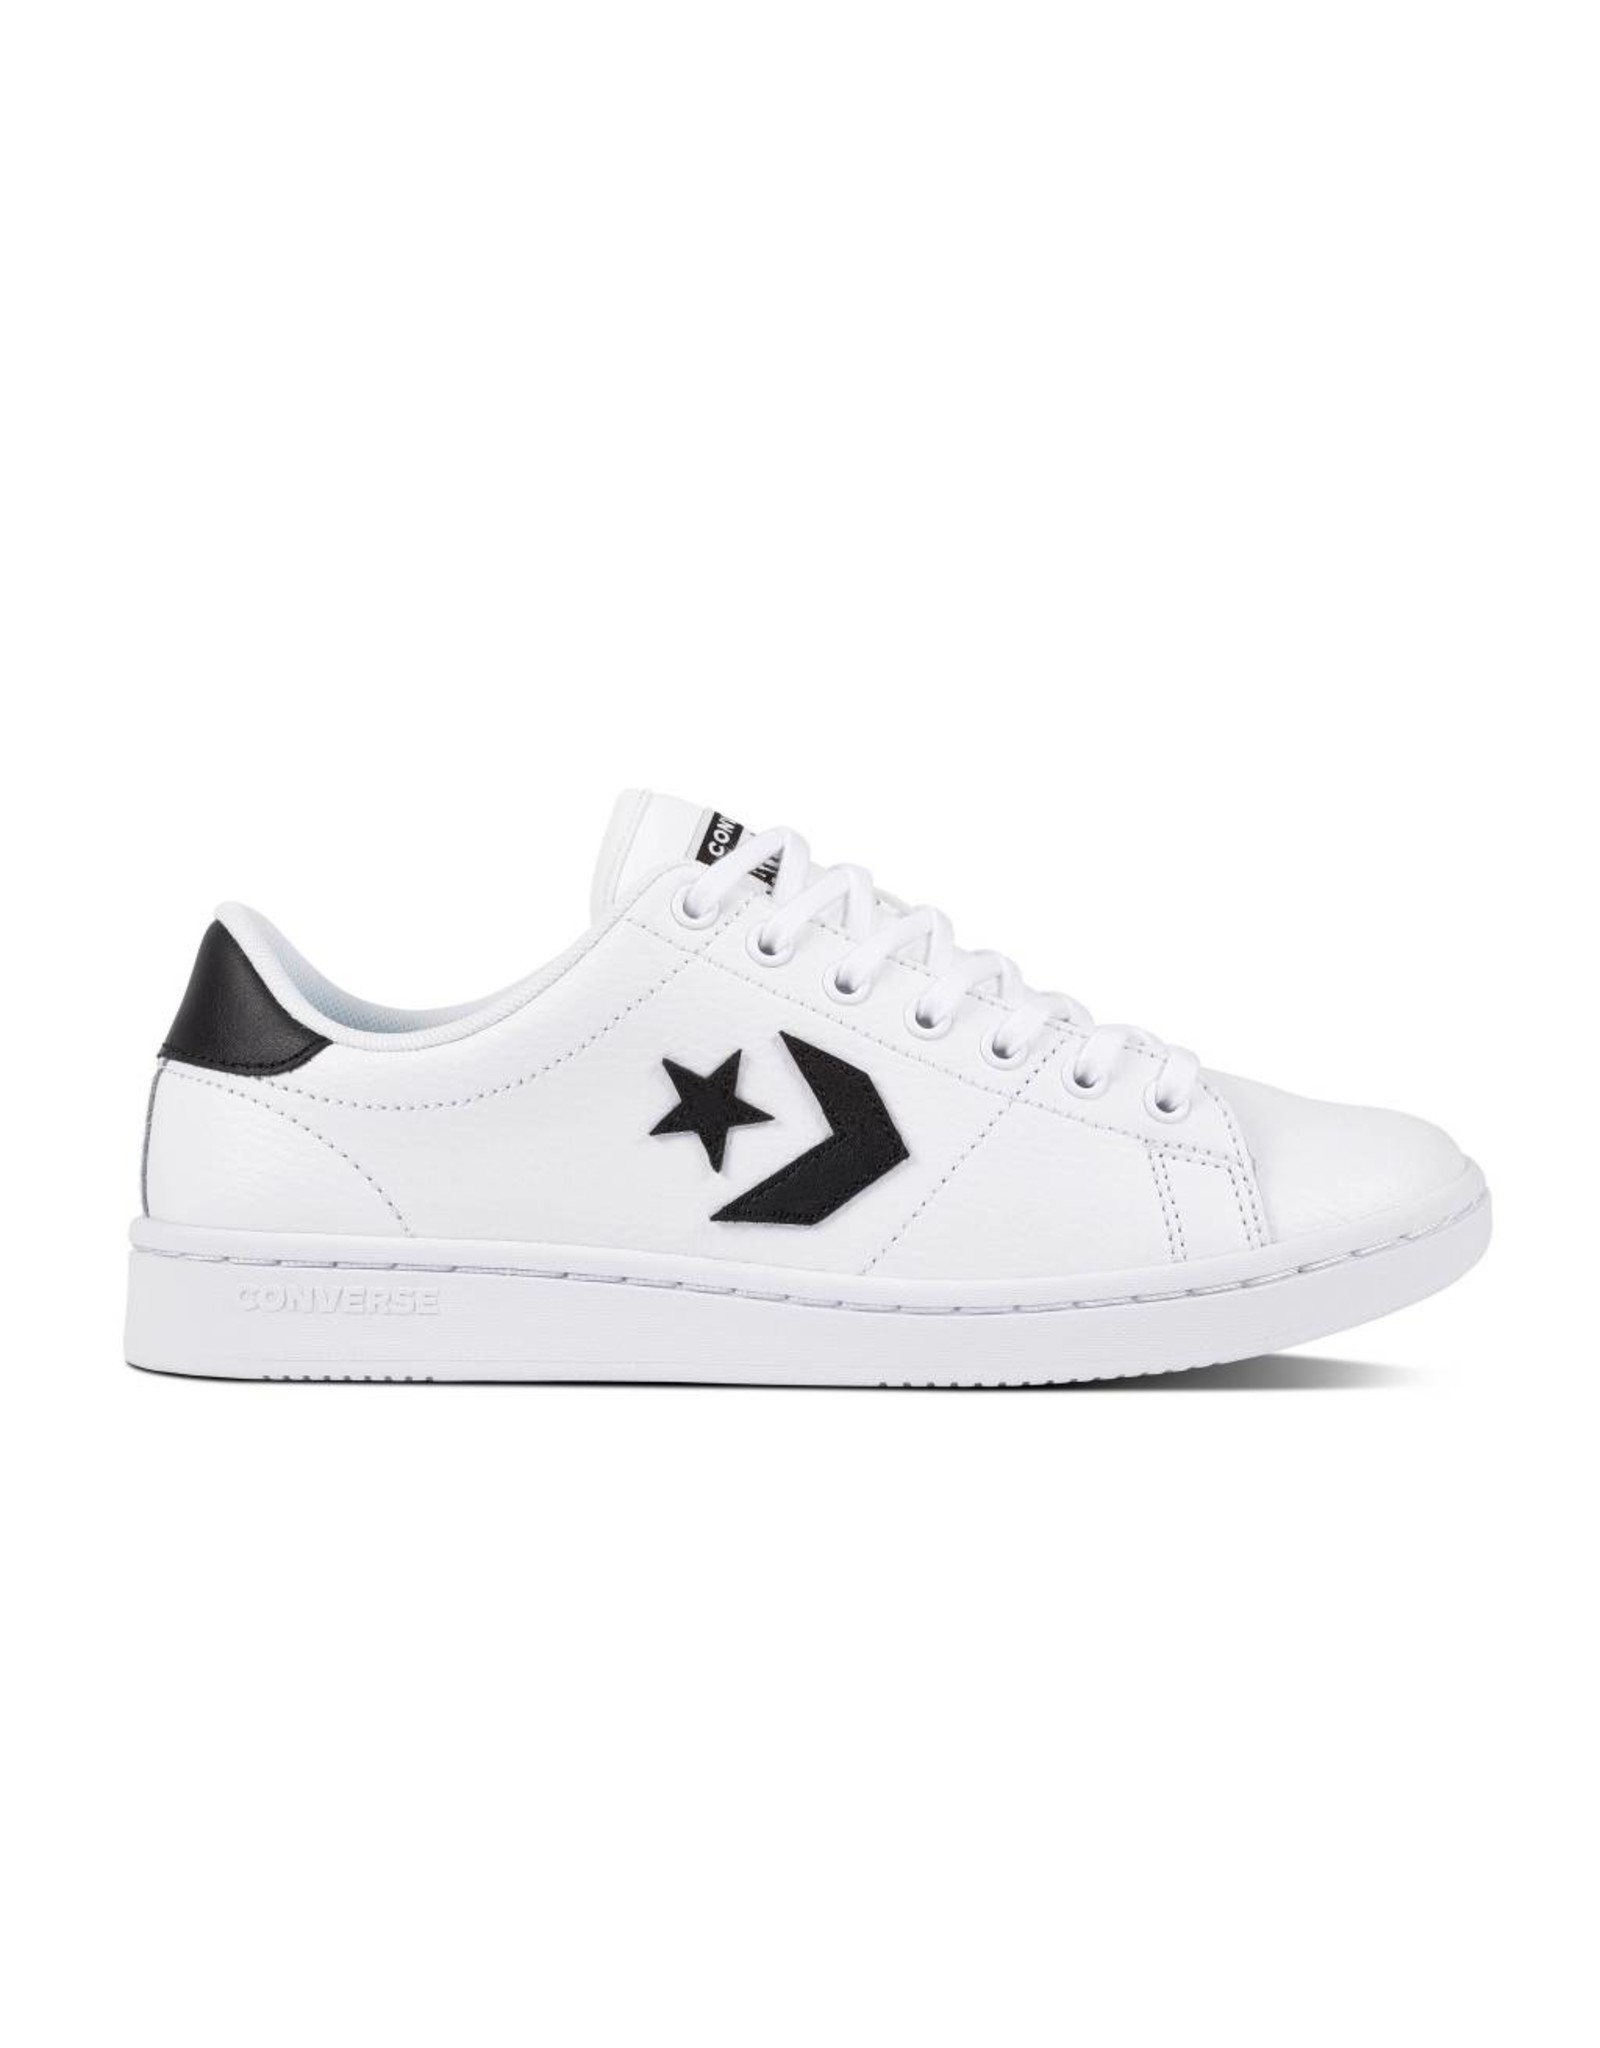 CONVERSE CONVERSE ALL-COURT OX WHITE/BLACK/WHITE C12ACW-561773C